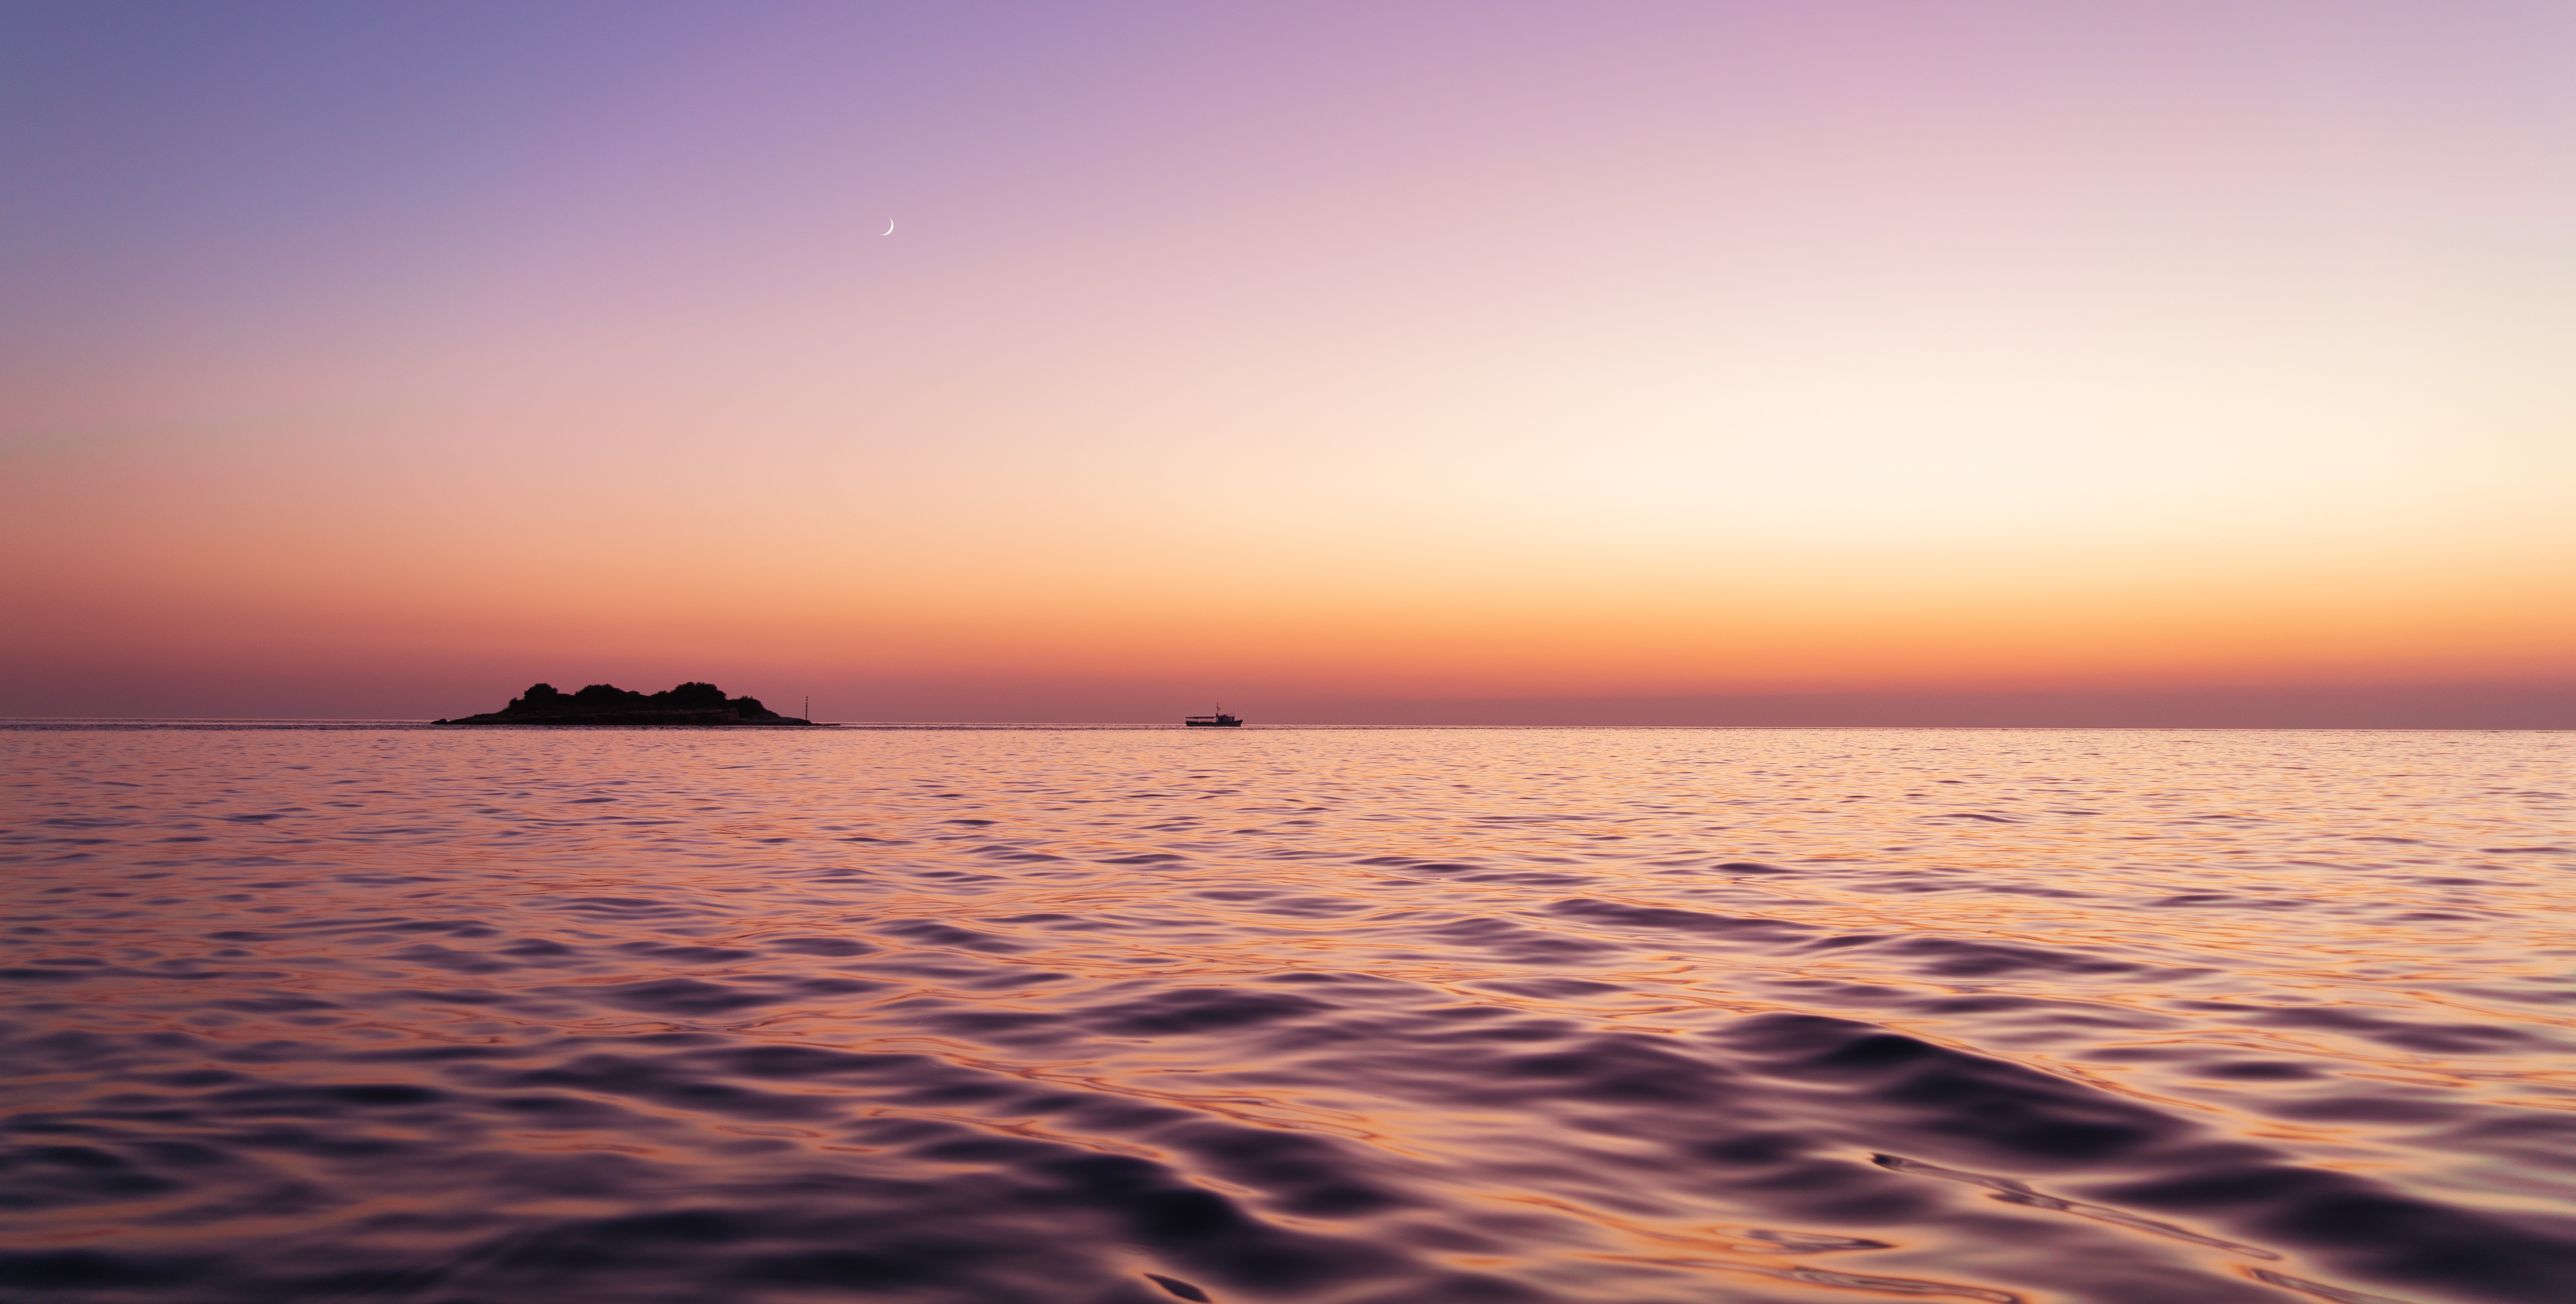 126404 download wallpaper Nature, Sea, Island, Dusk, Twilight, Water, Waves screensavers and pictures for free